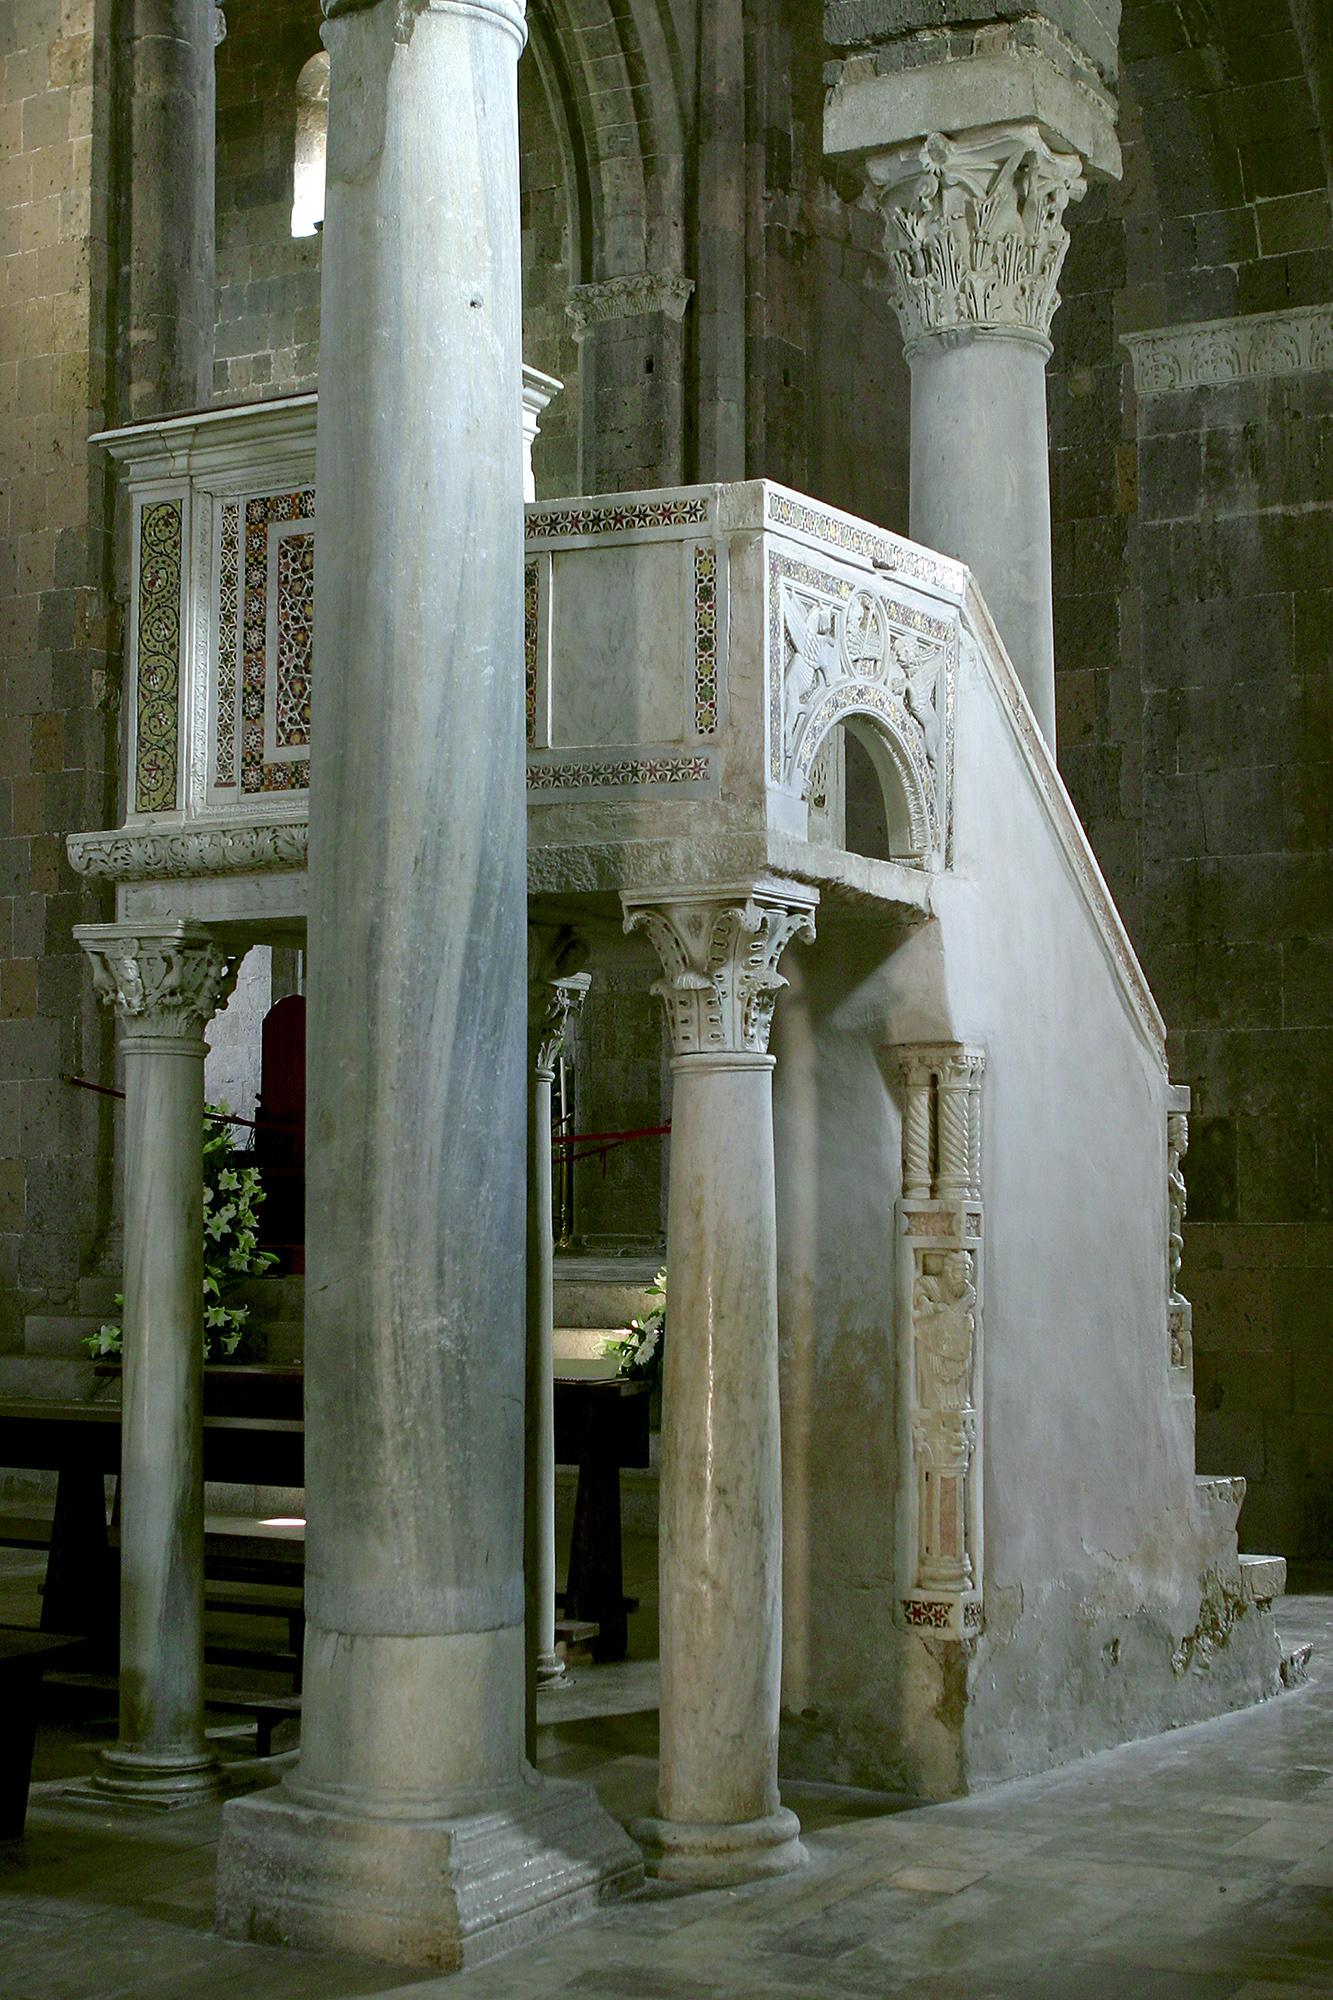 Pulpit and massive columns of the Basilica. – © Bruno Cristillo